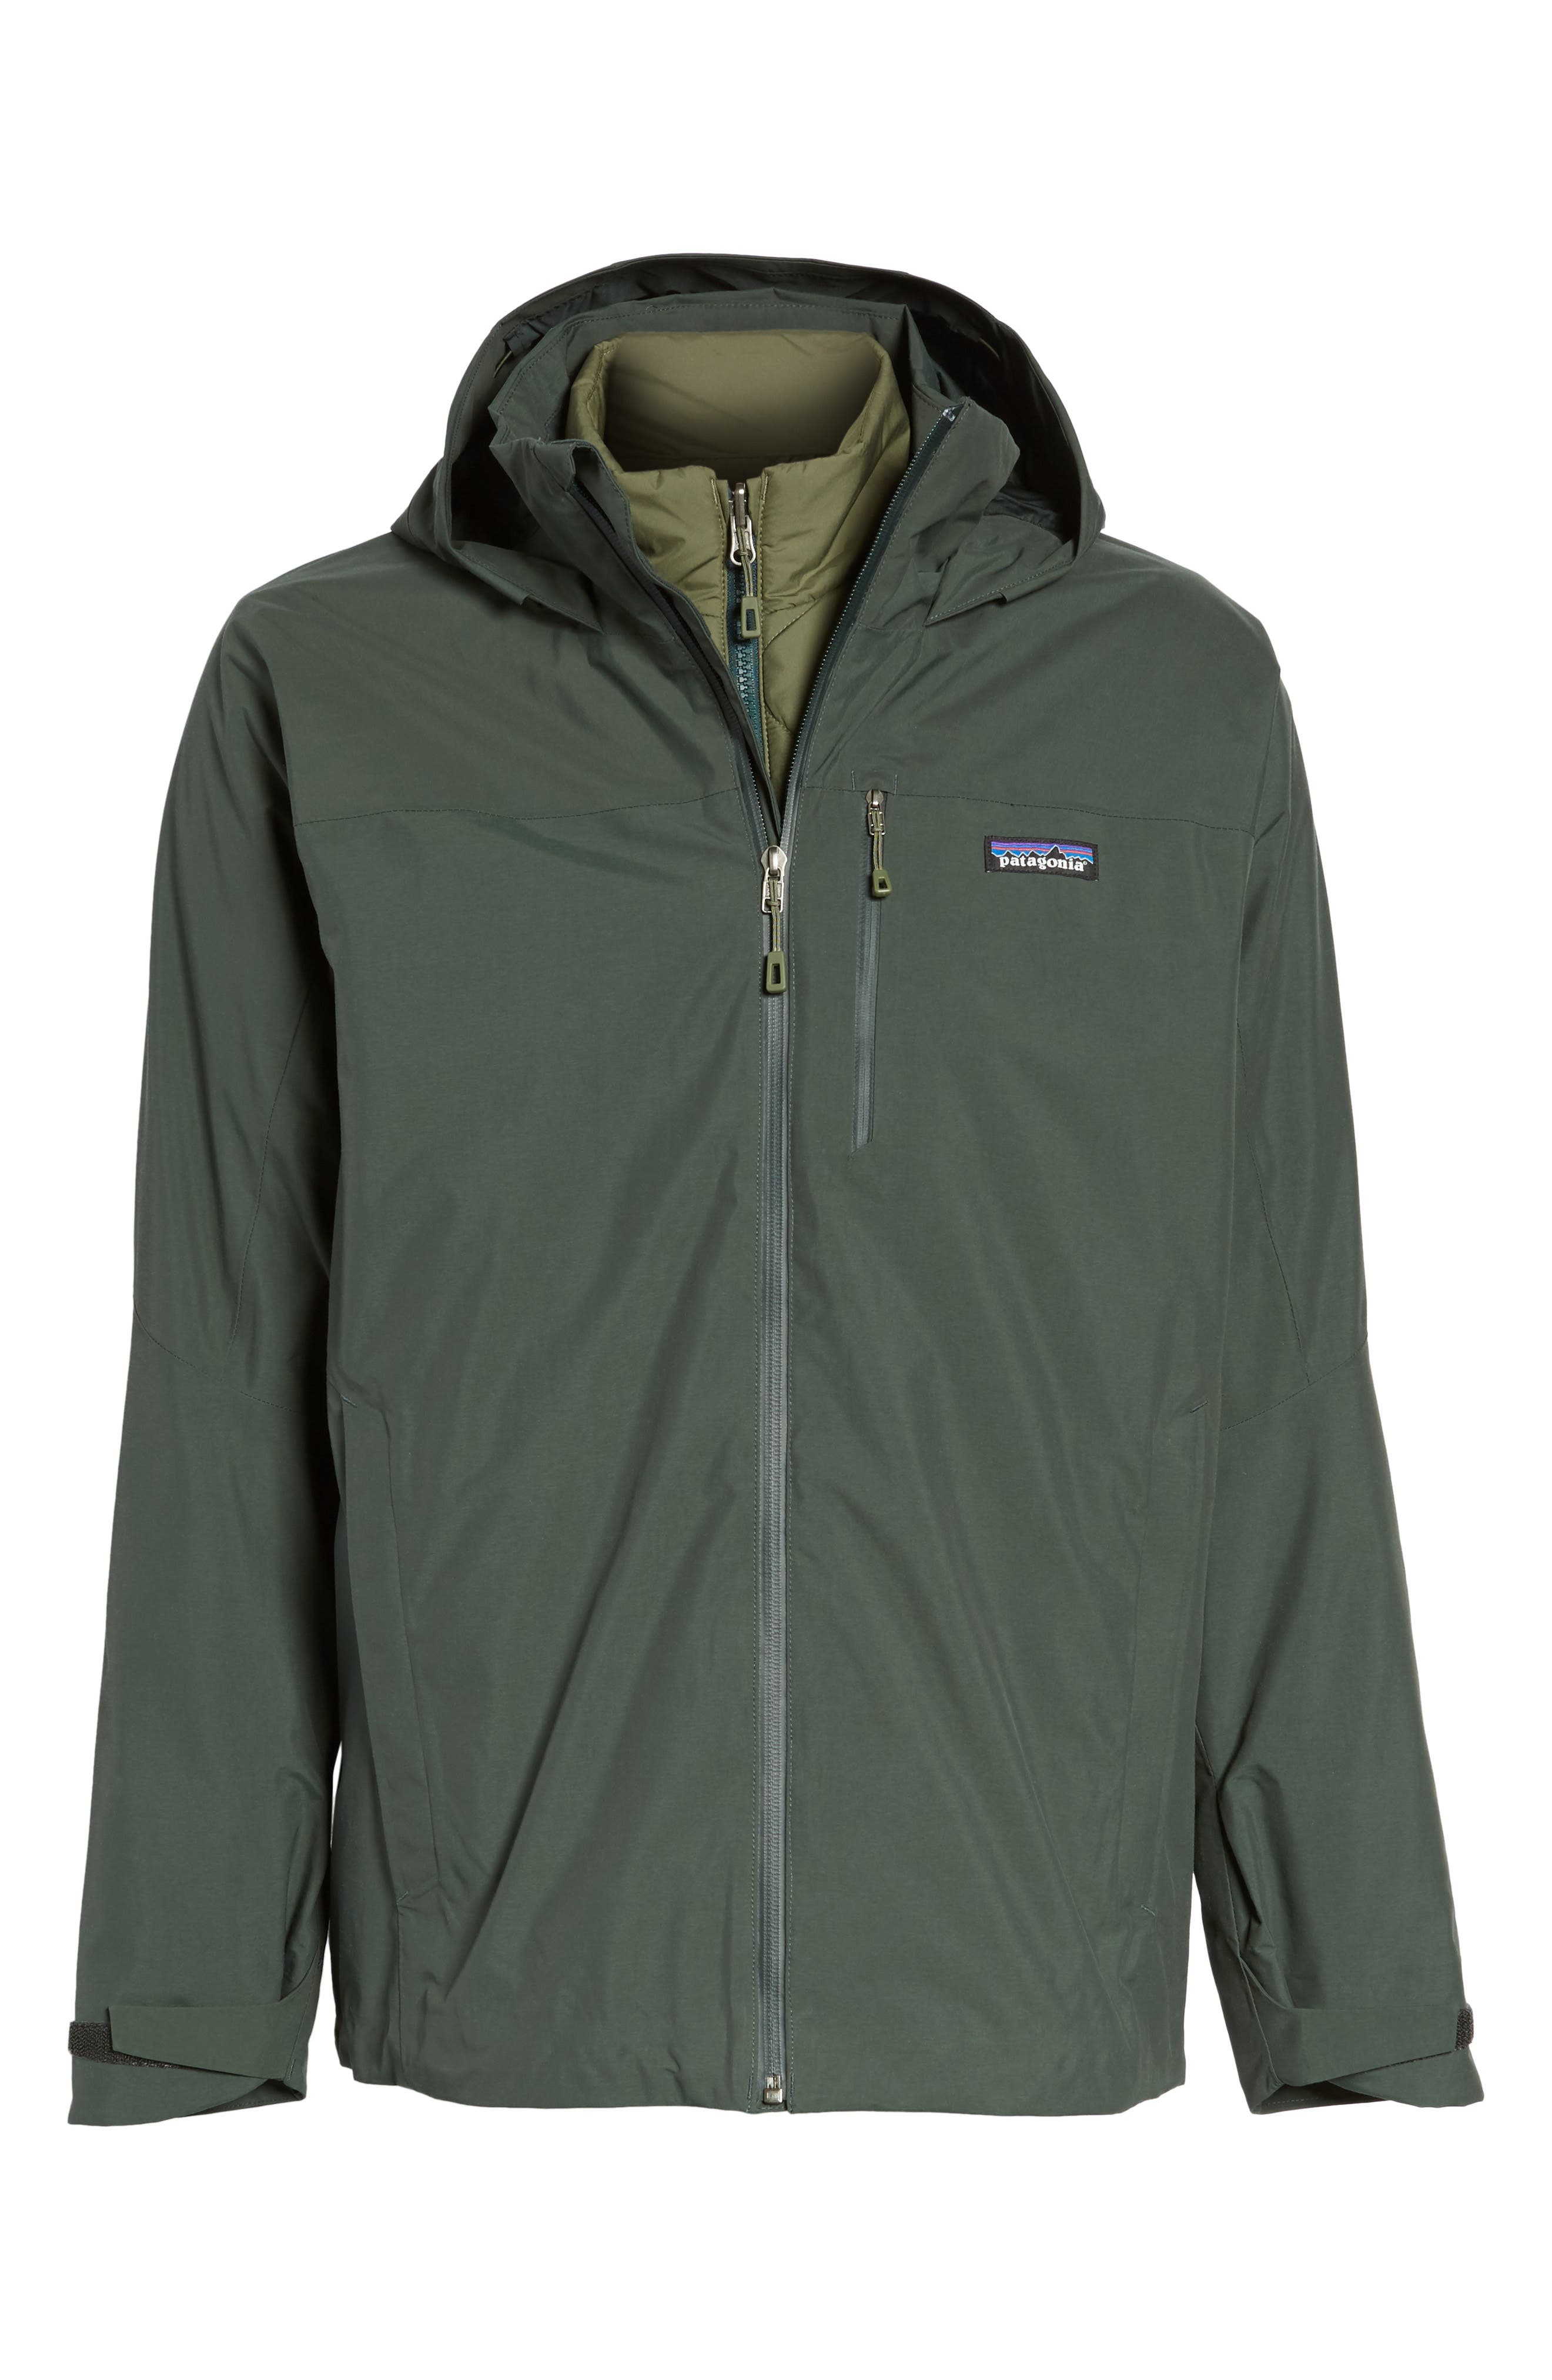 Windsweep 3-in-1 Jacket,                             Alternate thumbnail 5, color,                             002